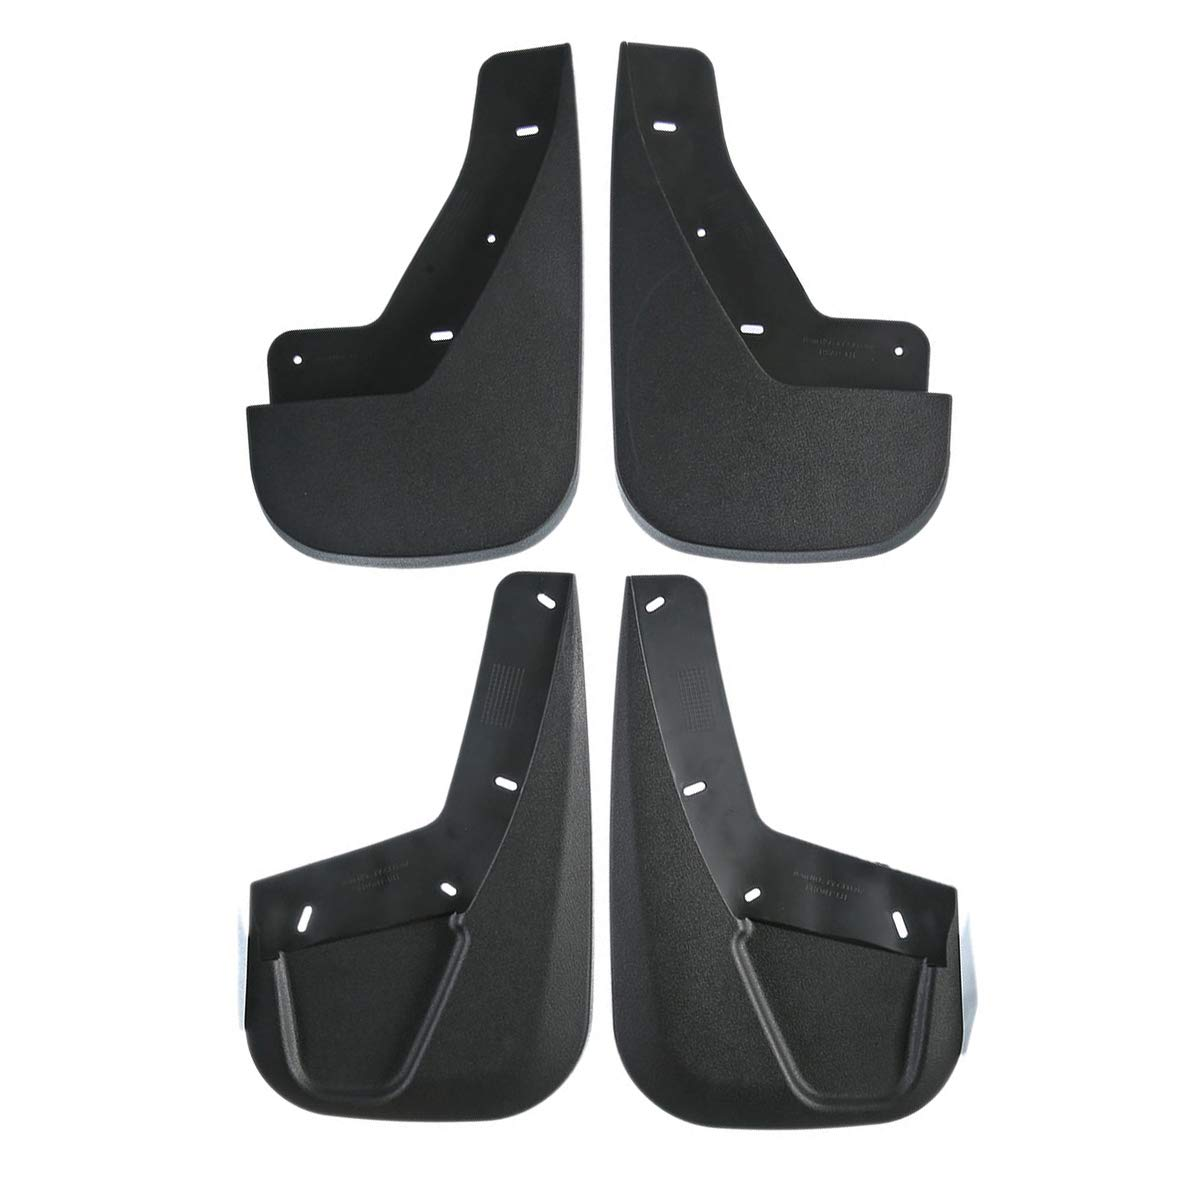 A-Premium Mud Flaps Splash Guards for Cadillac Escalade 2007-2014 Chevrolet Tahoe LTZ 2009-2014 GMC Yukon 2014 4-PC Set